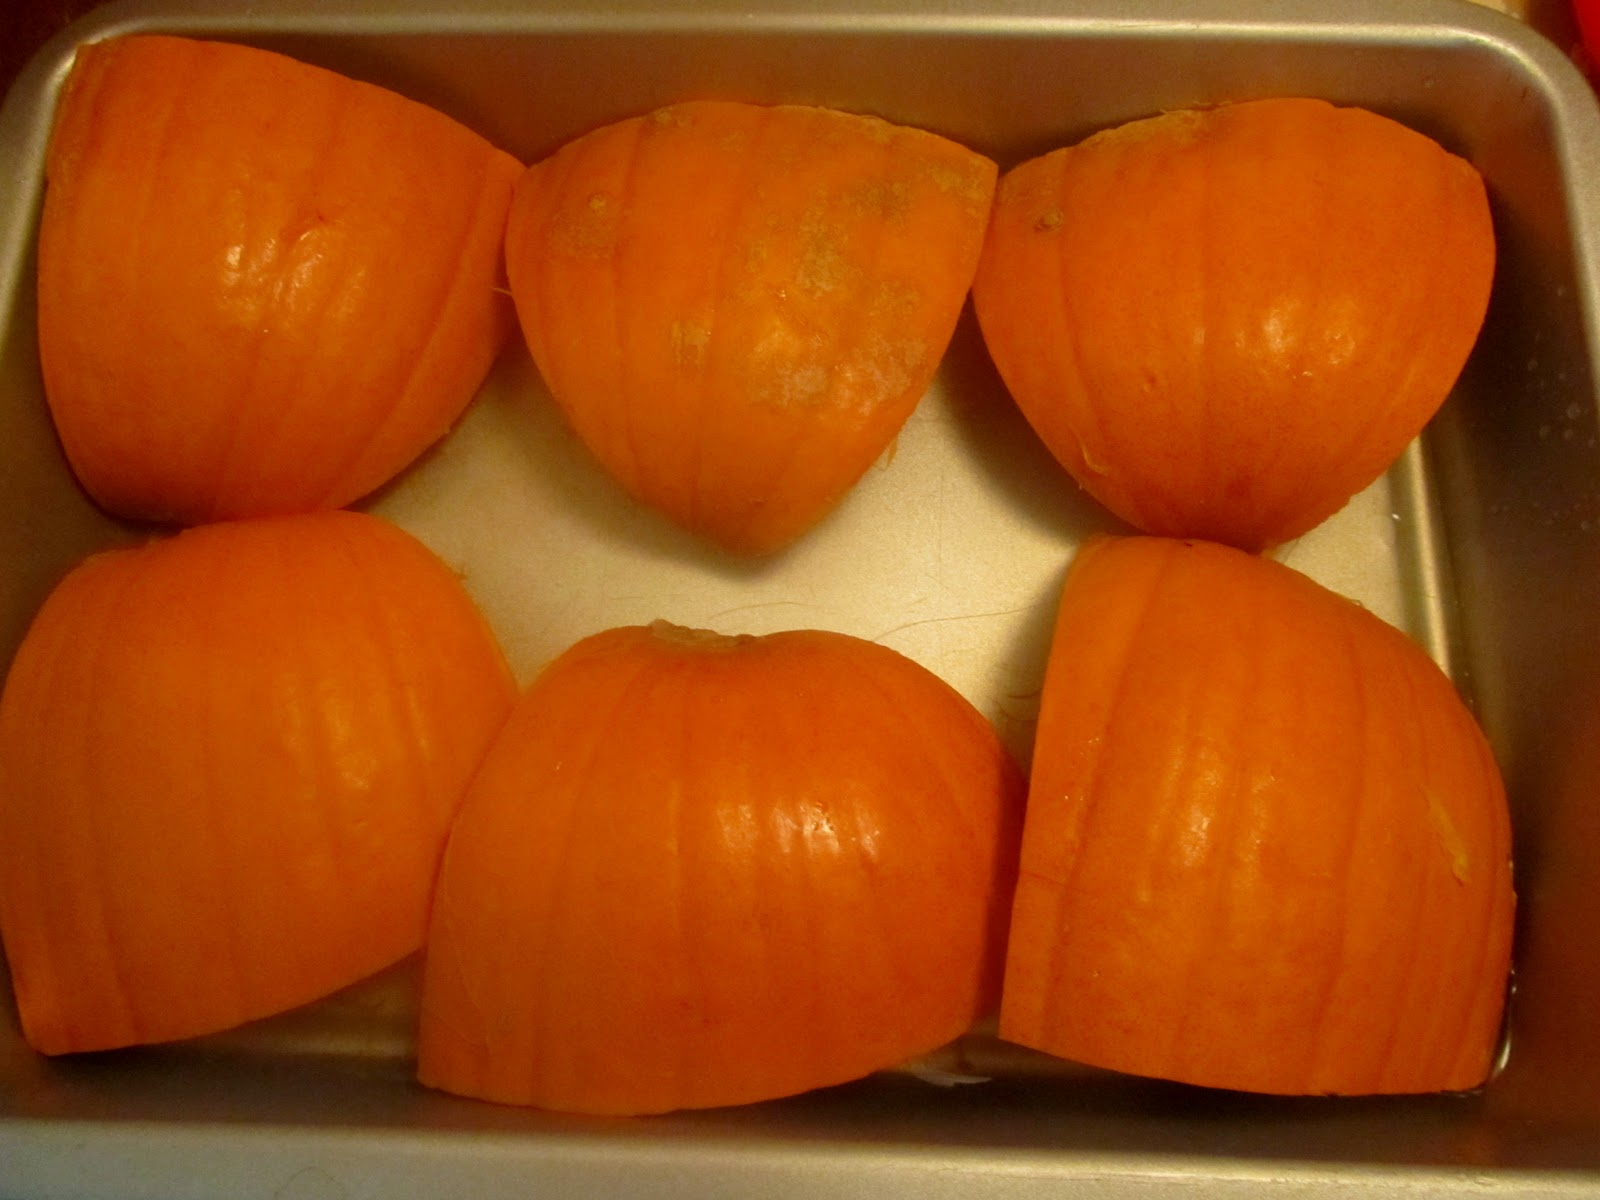 Simple Wife With A Simple Life: Tasty Thursday - Pumpkin Puree